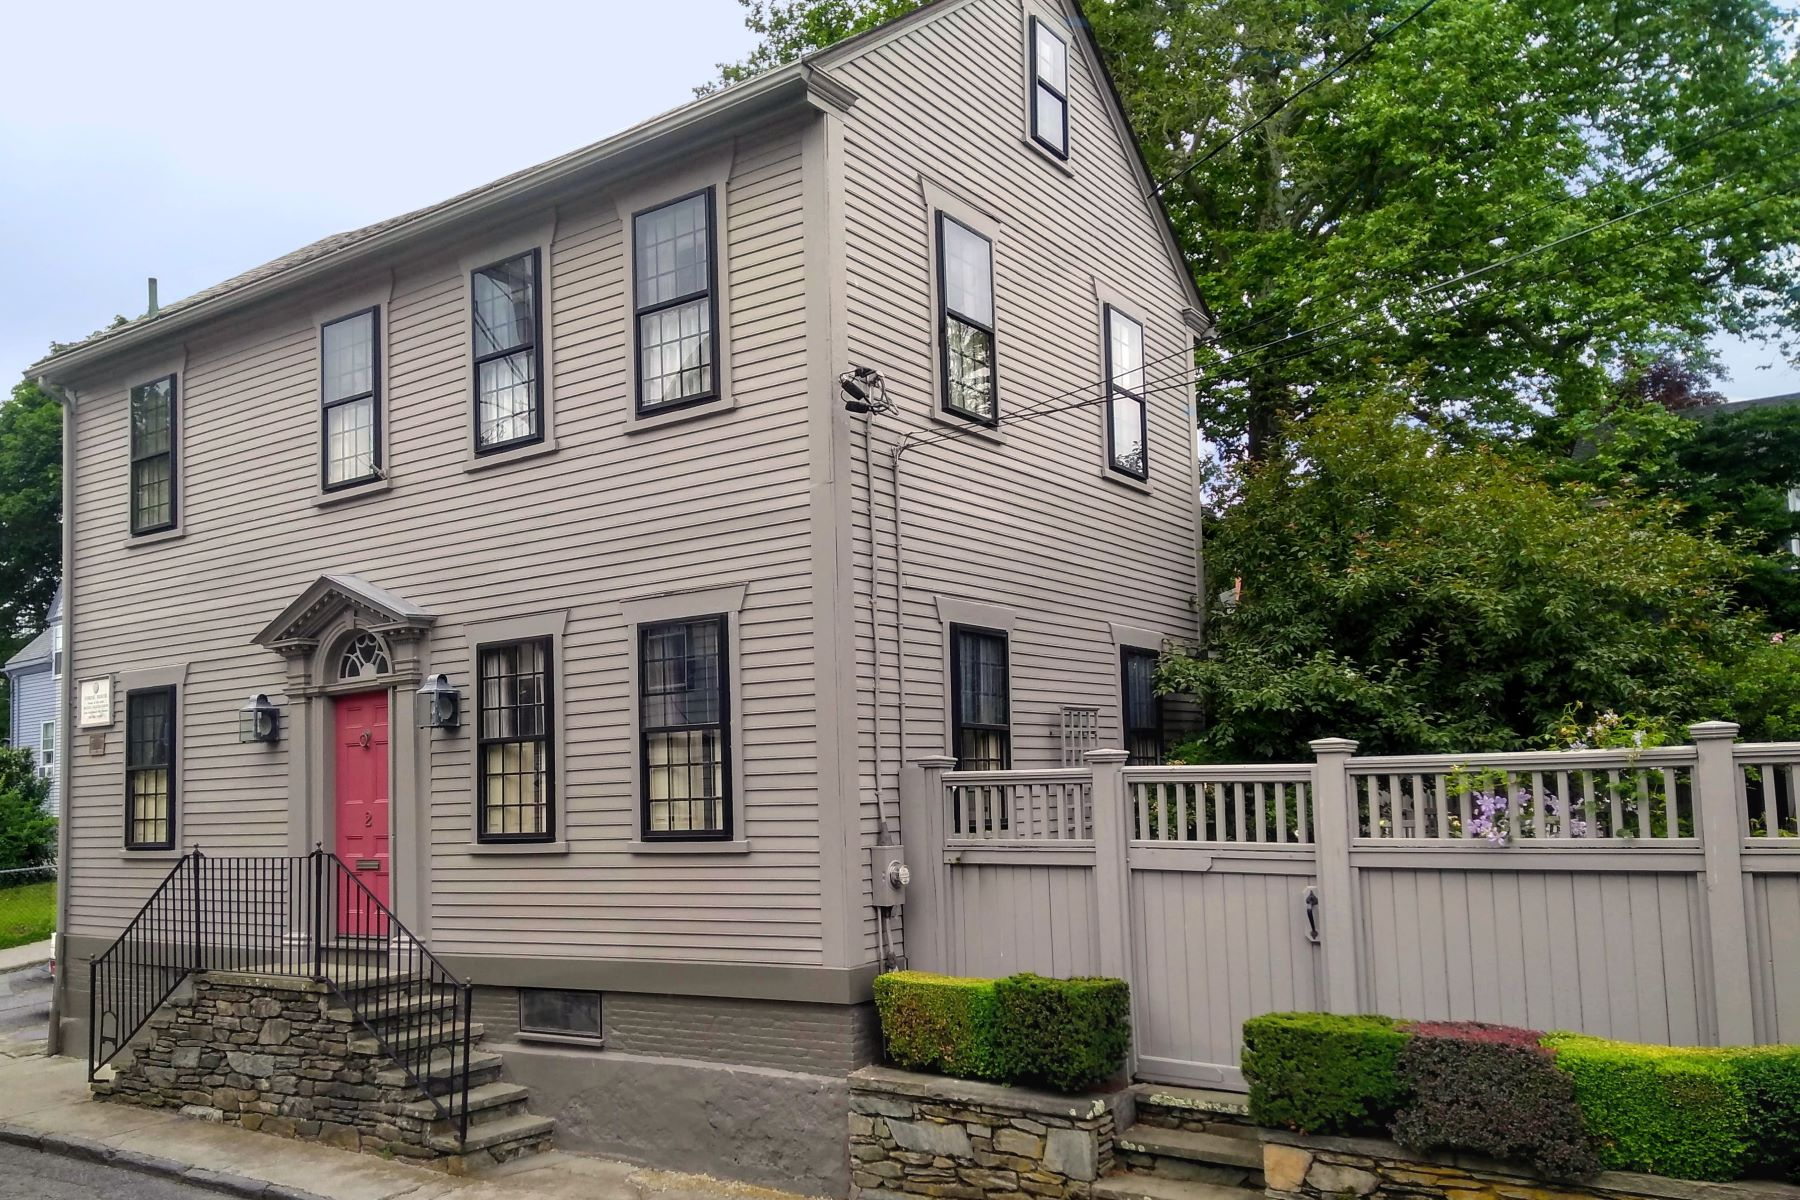 Single Family Homes for Sale at The Corne House 2 Corne Street Newport, Rhode Island 02840 United States